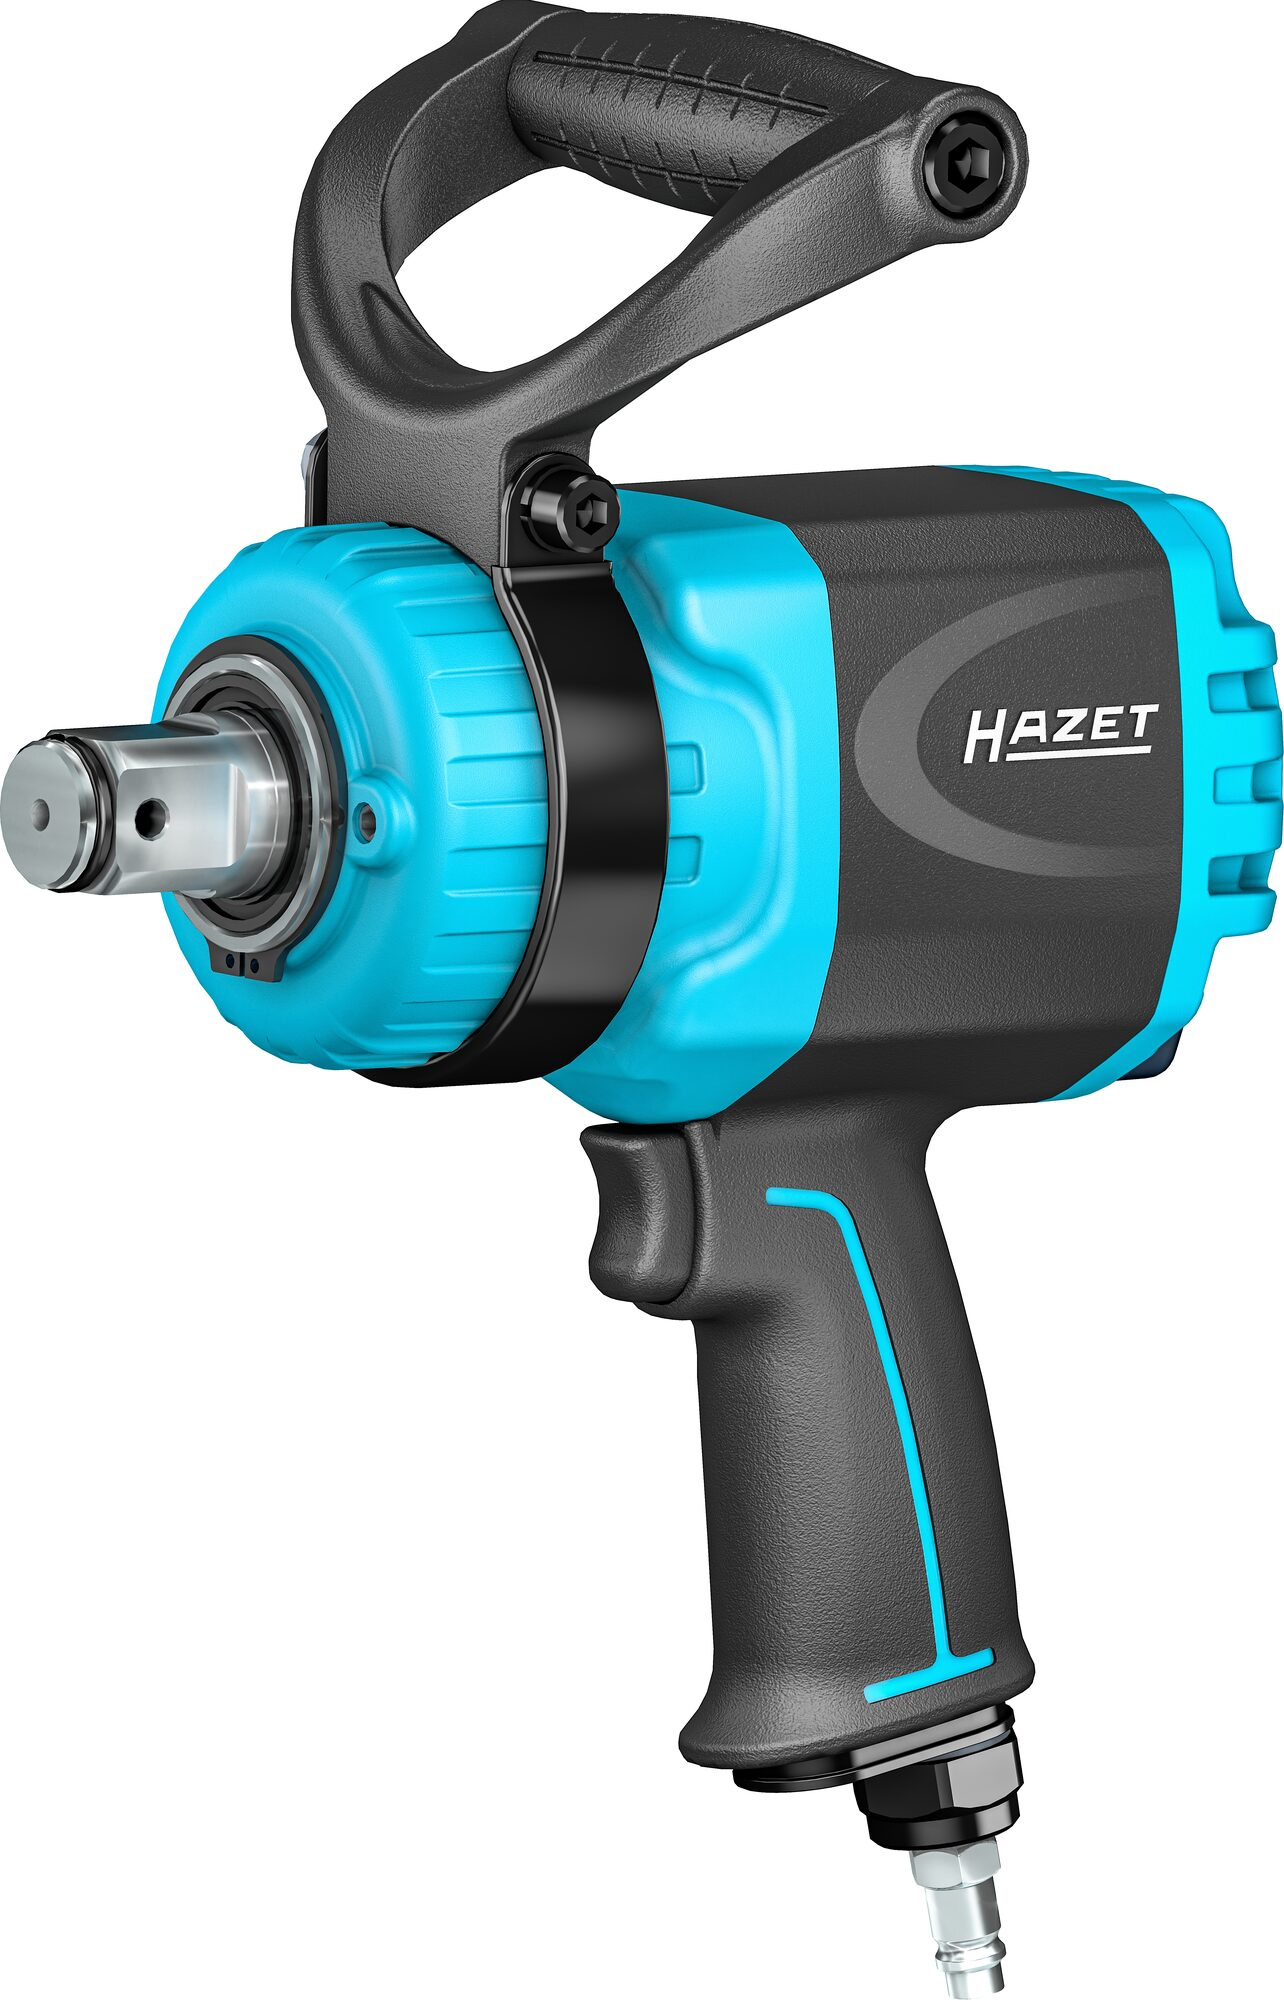 New impact wrench with accessories from HAZET